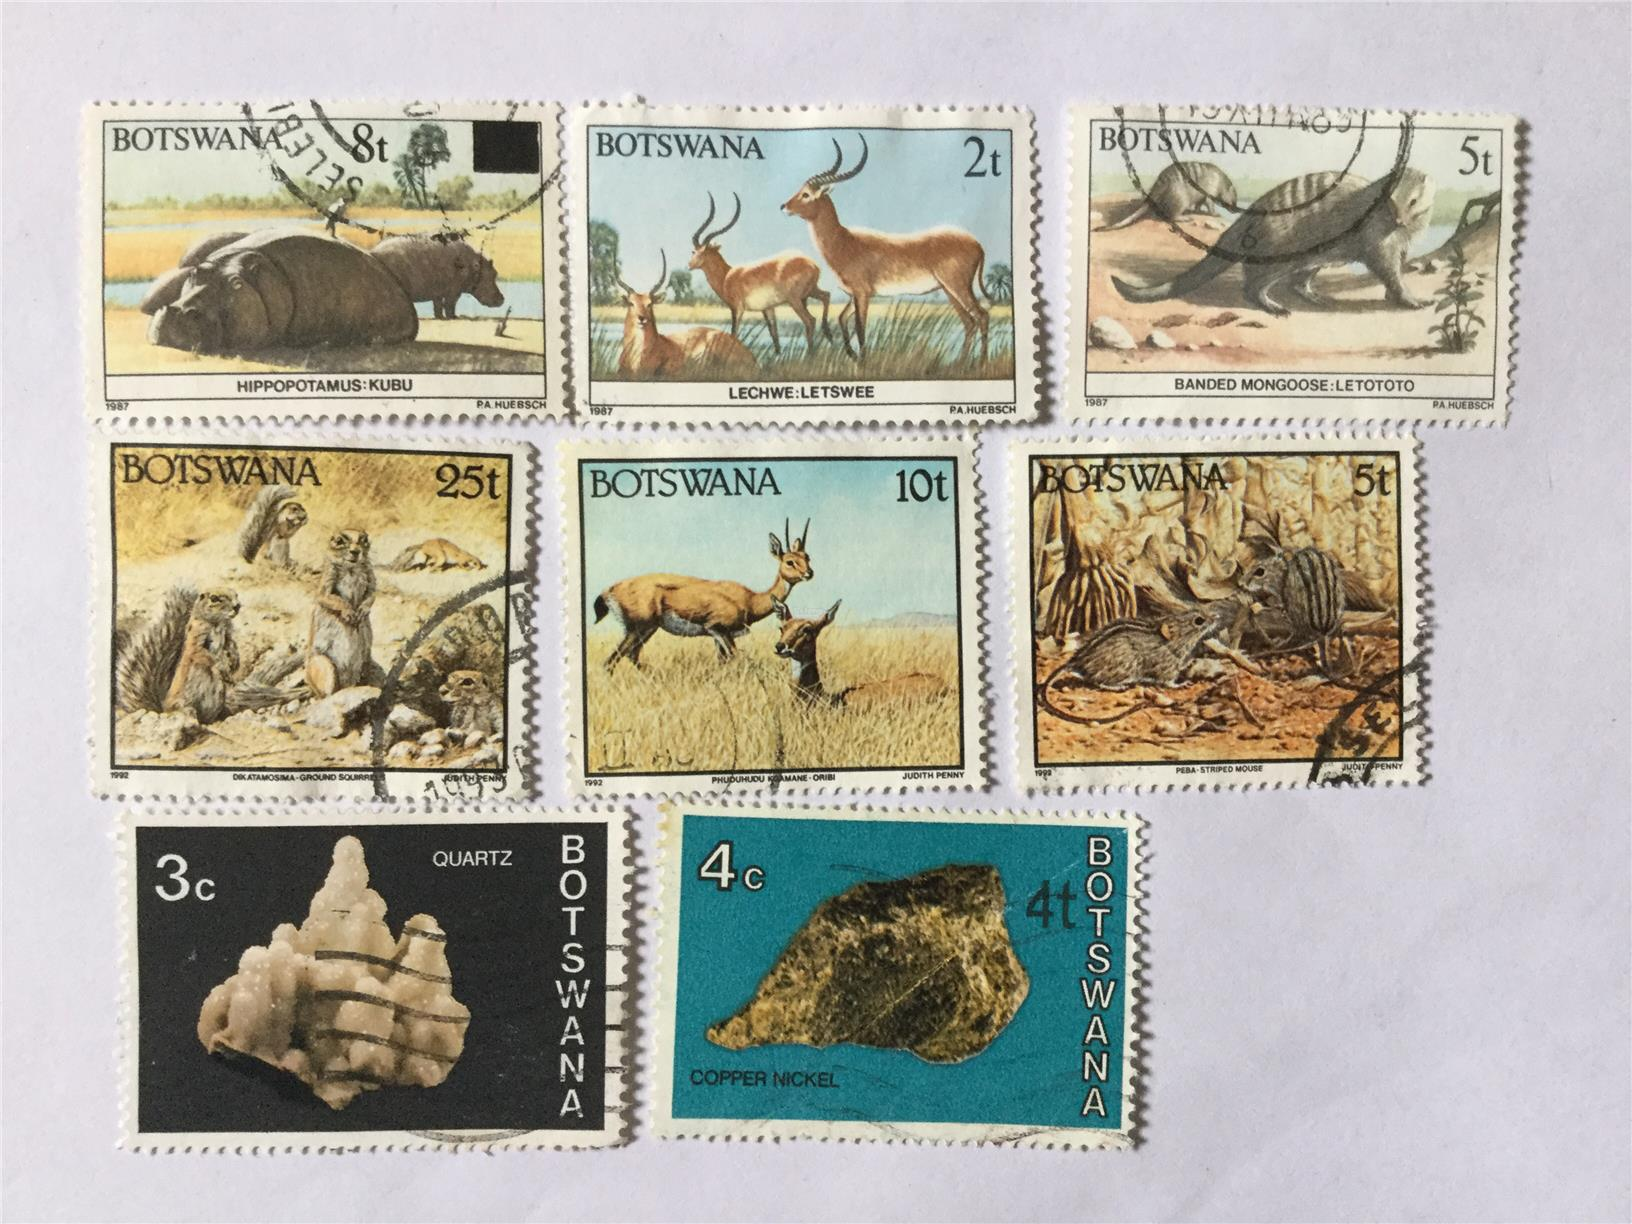 Botswana Nice Stamps Lot